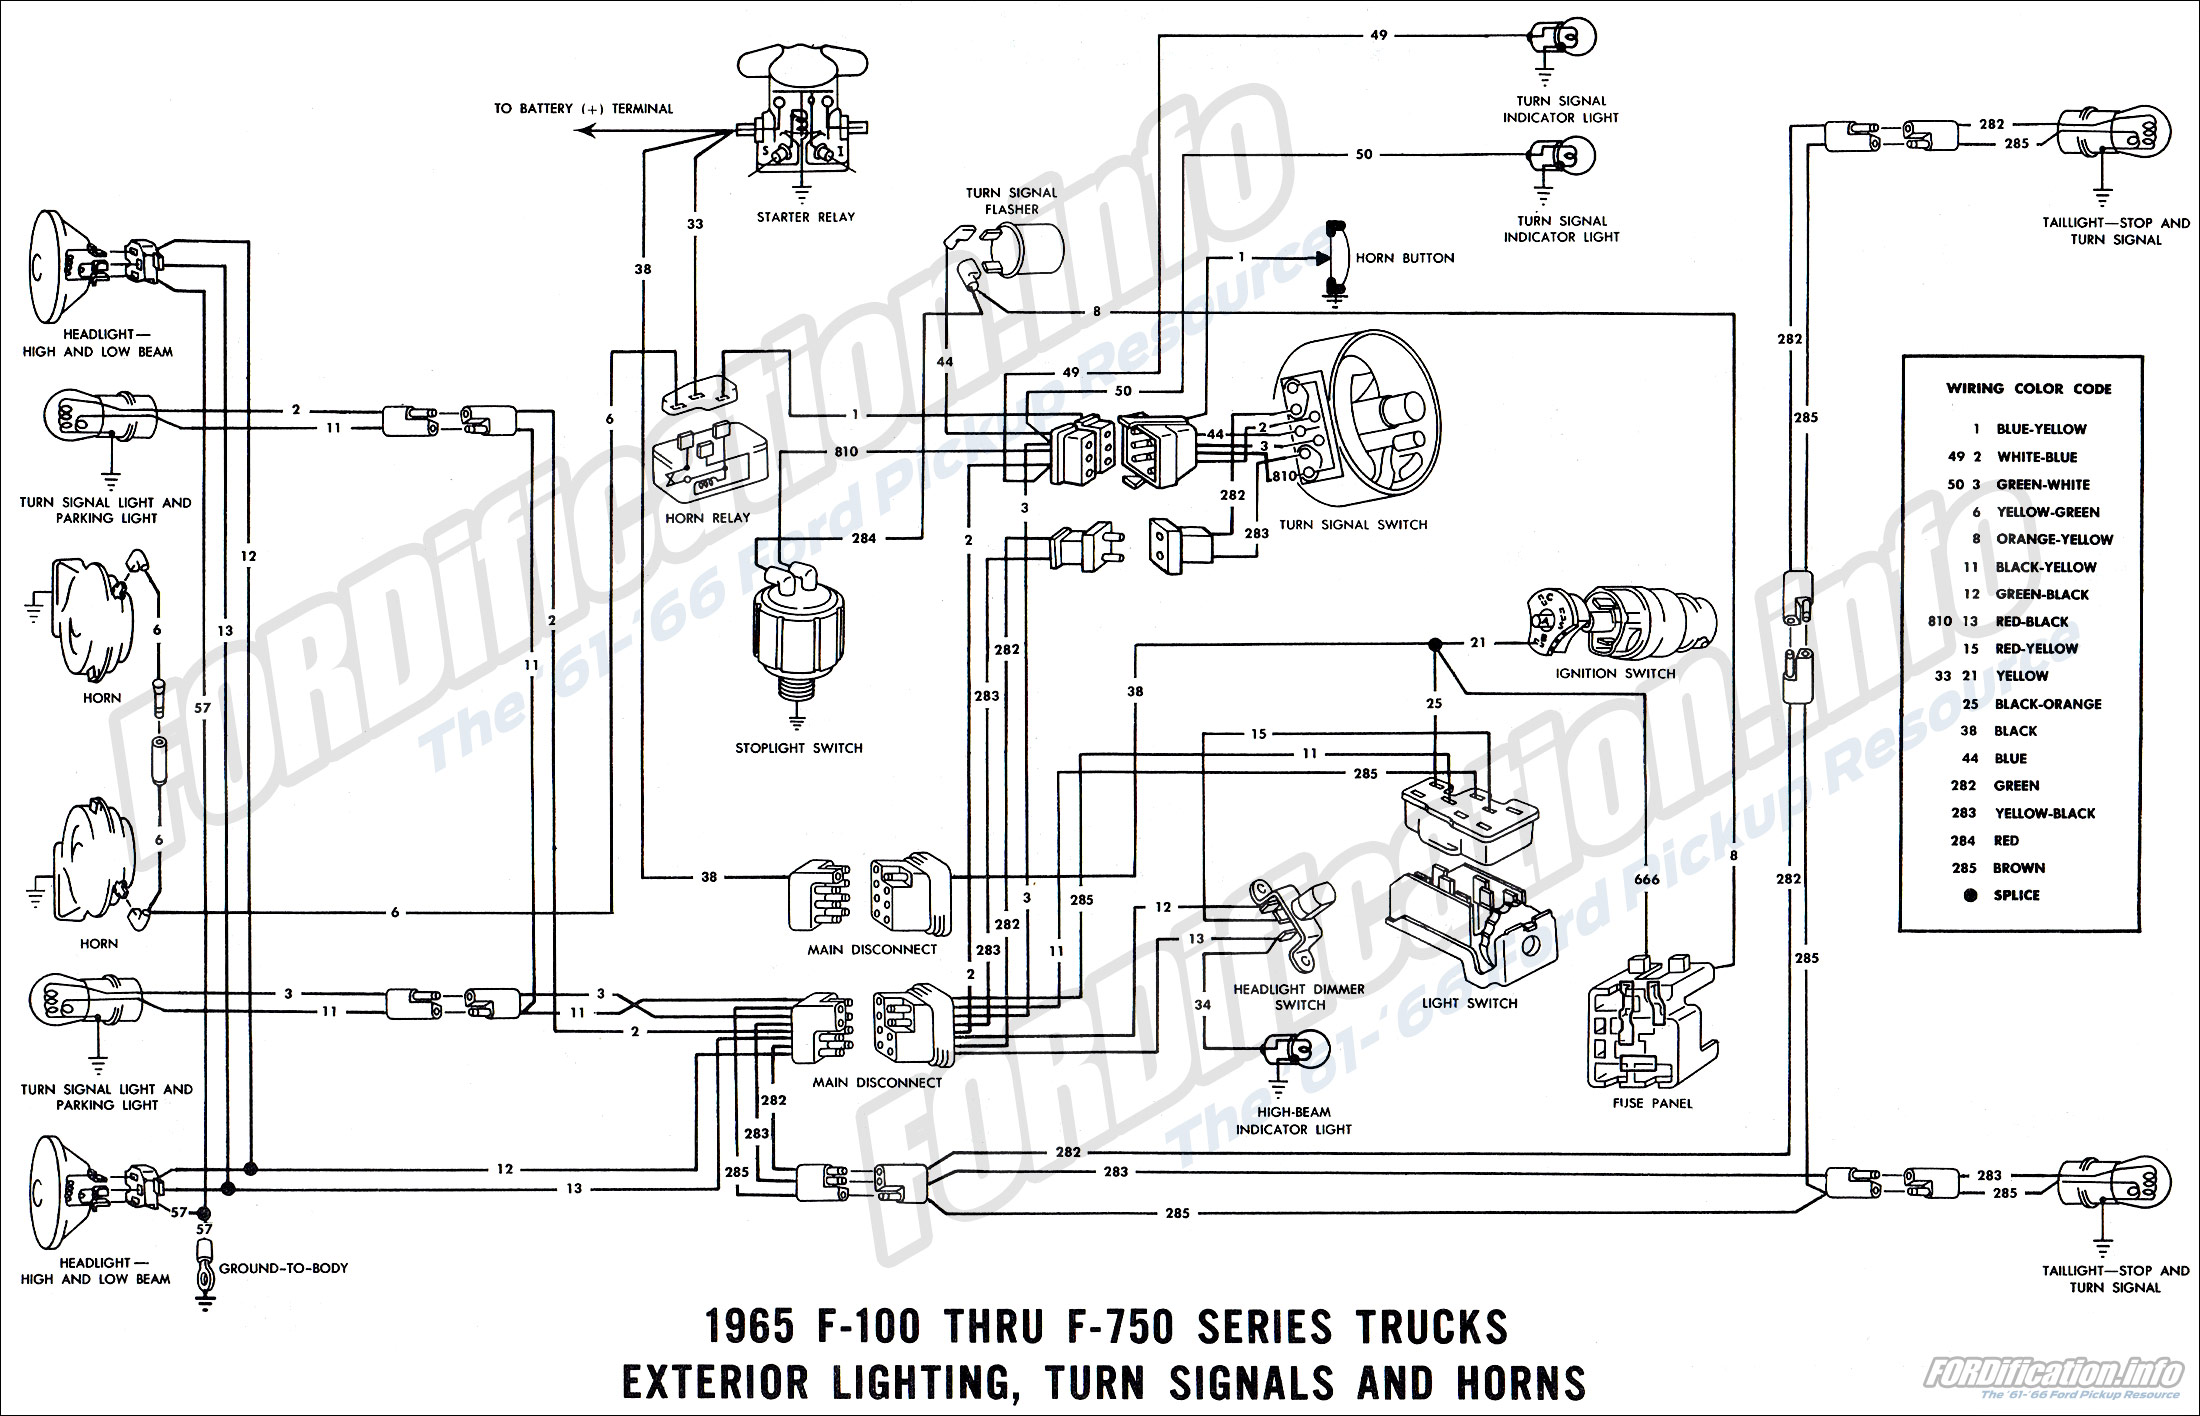 1965 ford truck wiring diagrams fordification info the 61 66 rh fordification info ford truck trailer wiring diagram 1949 ford truck wiring diagram